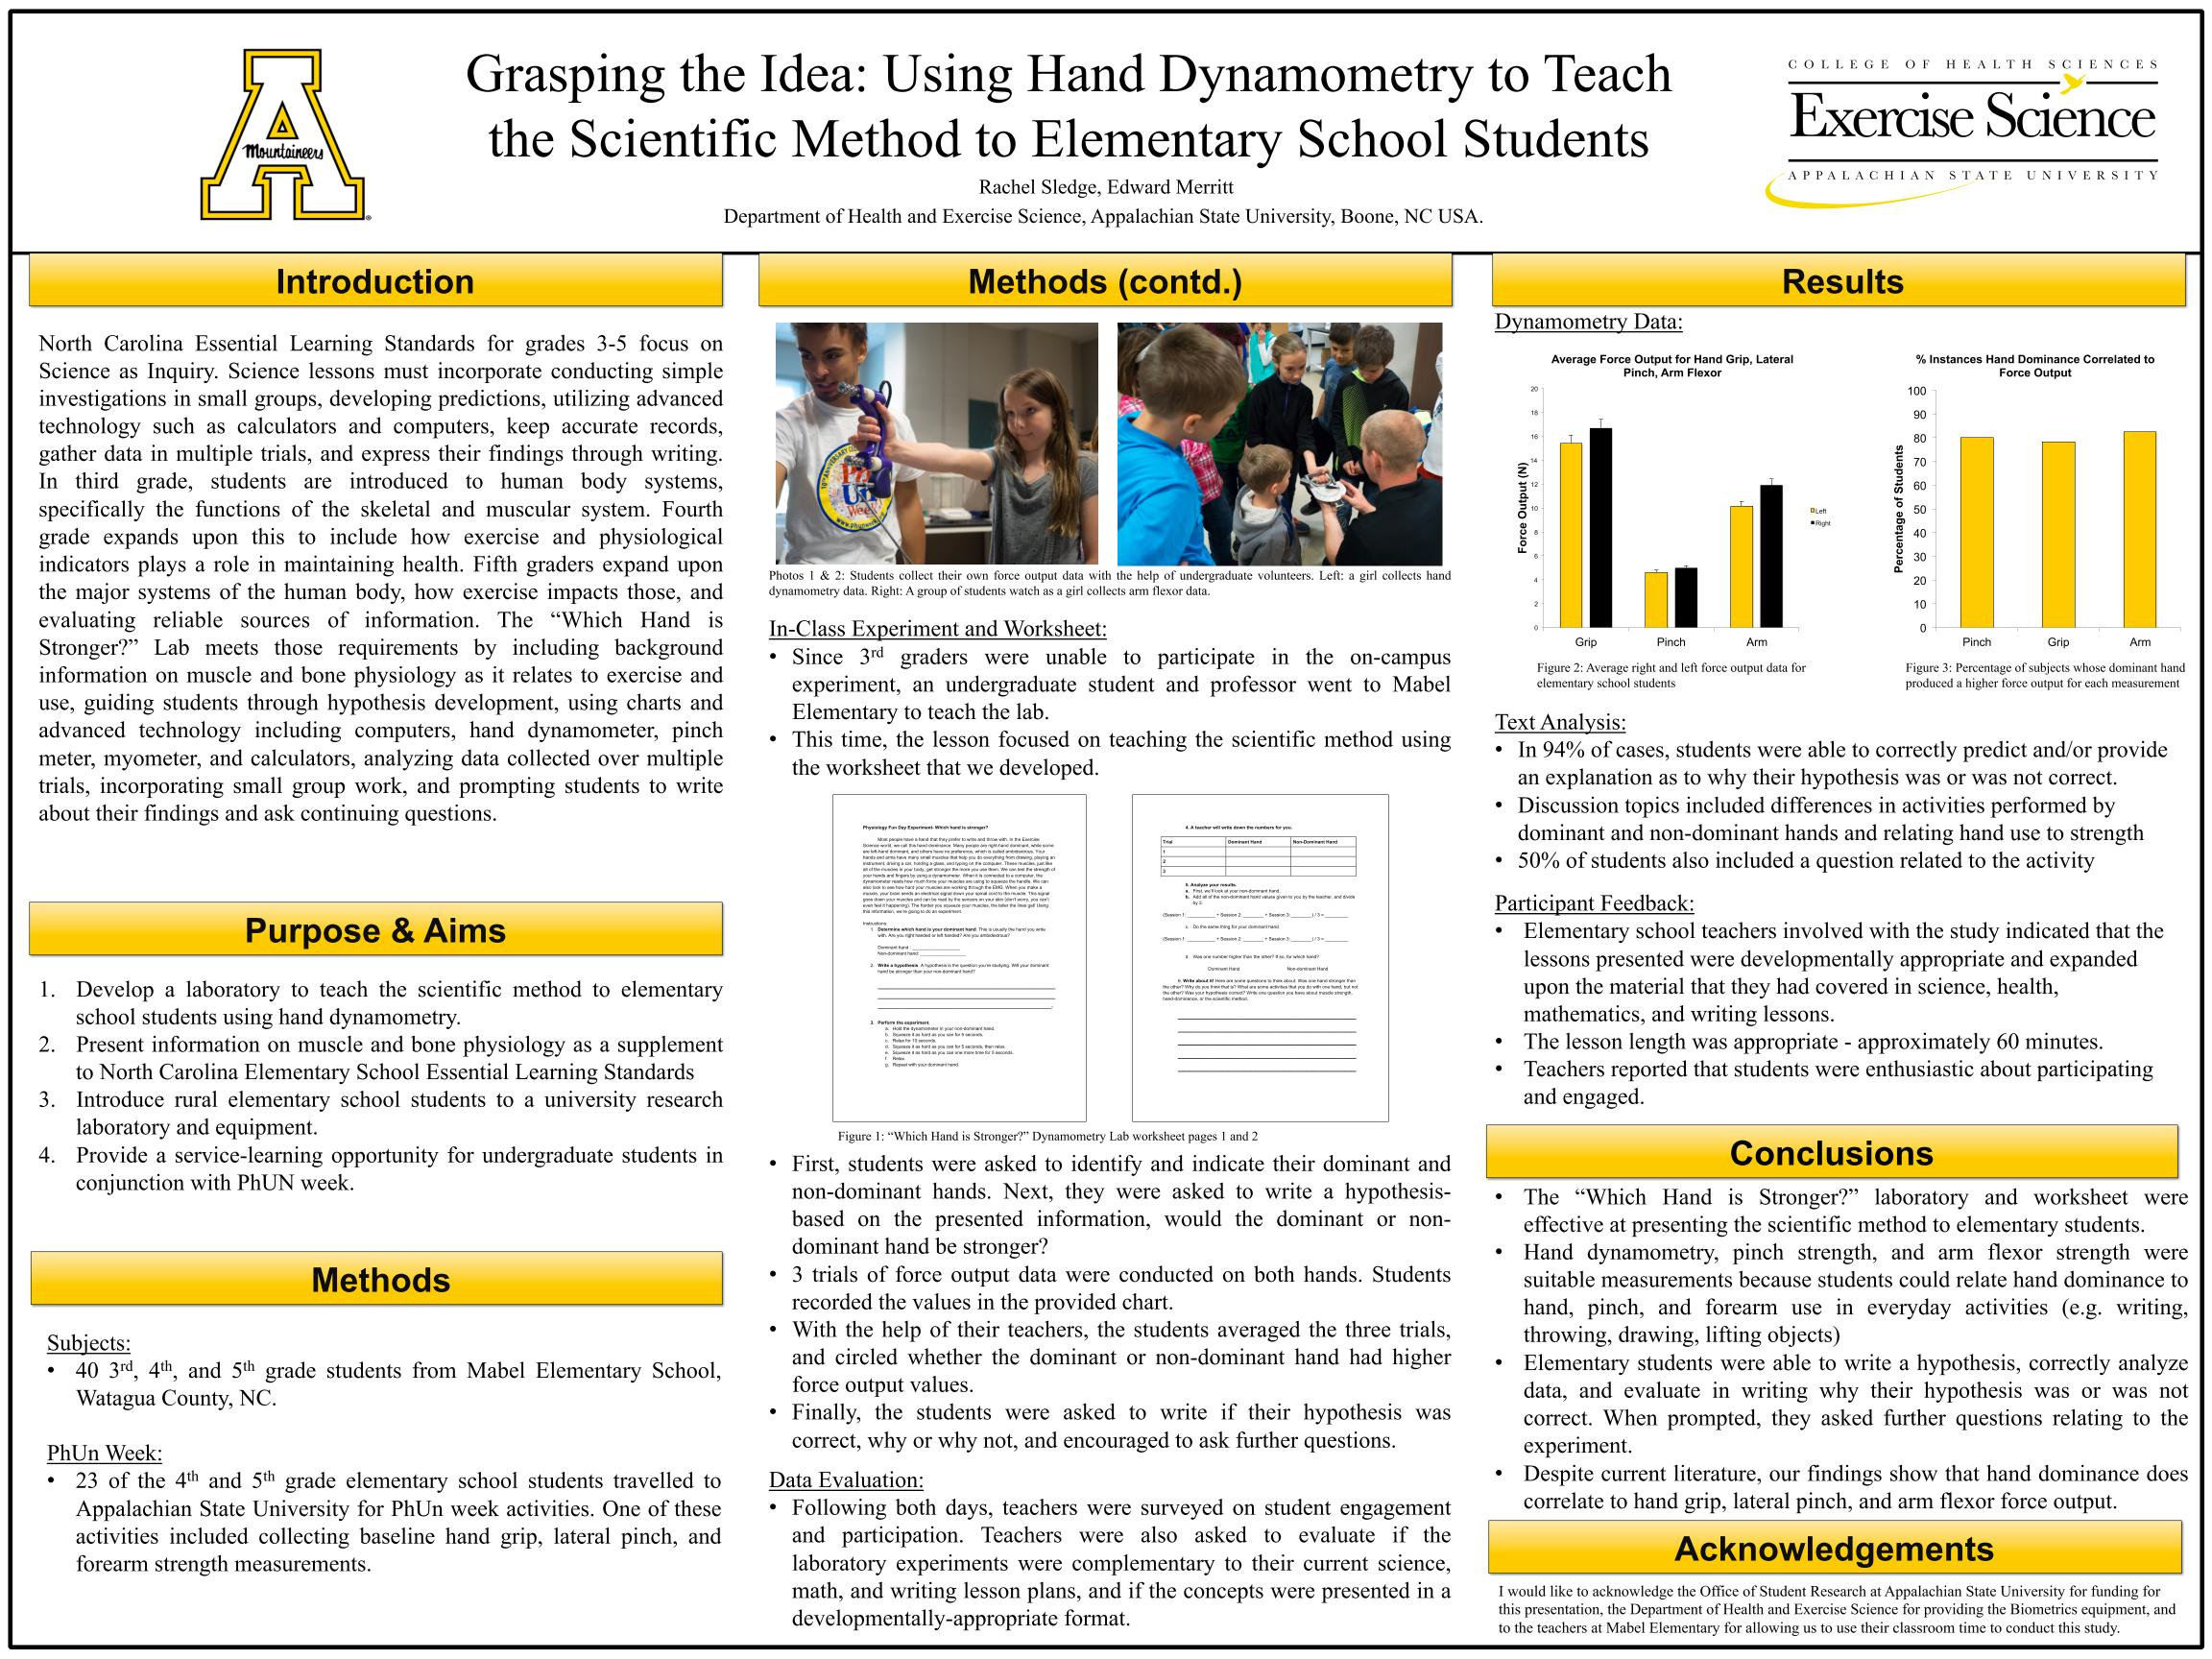 worksheet Scientific Method Worksheet Elementary lifescitrc org search results grasping the idea using hand dynamometry to teach scientific method elementary school students rachel sledge appalachian state university